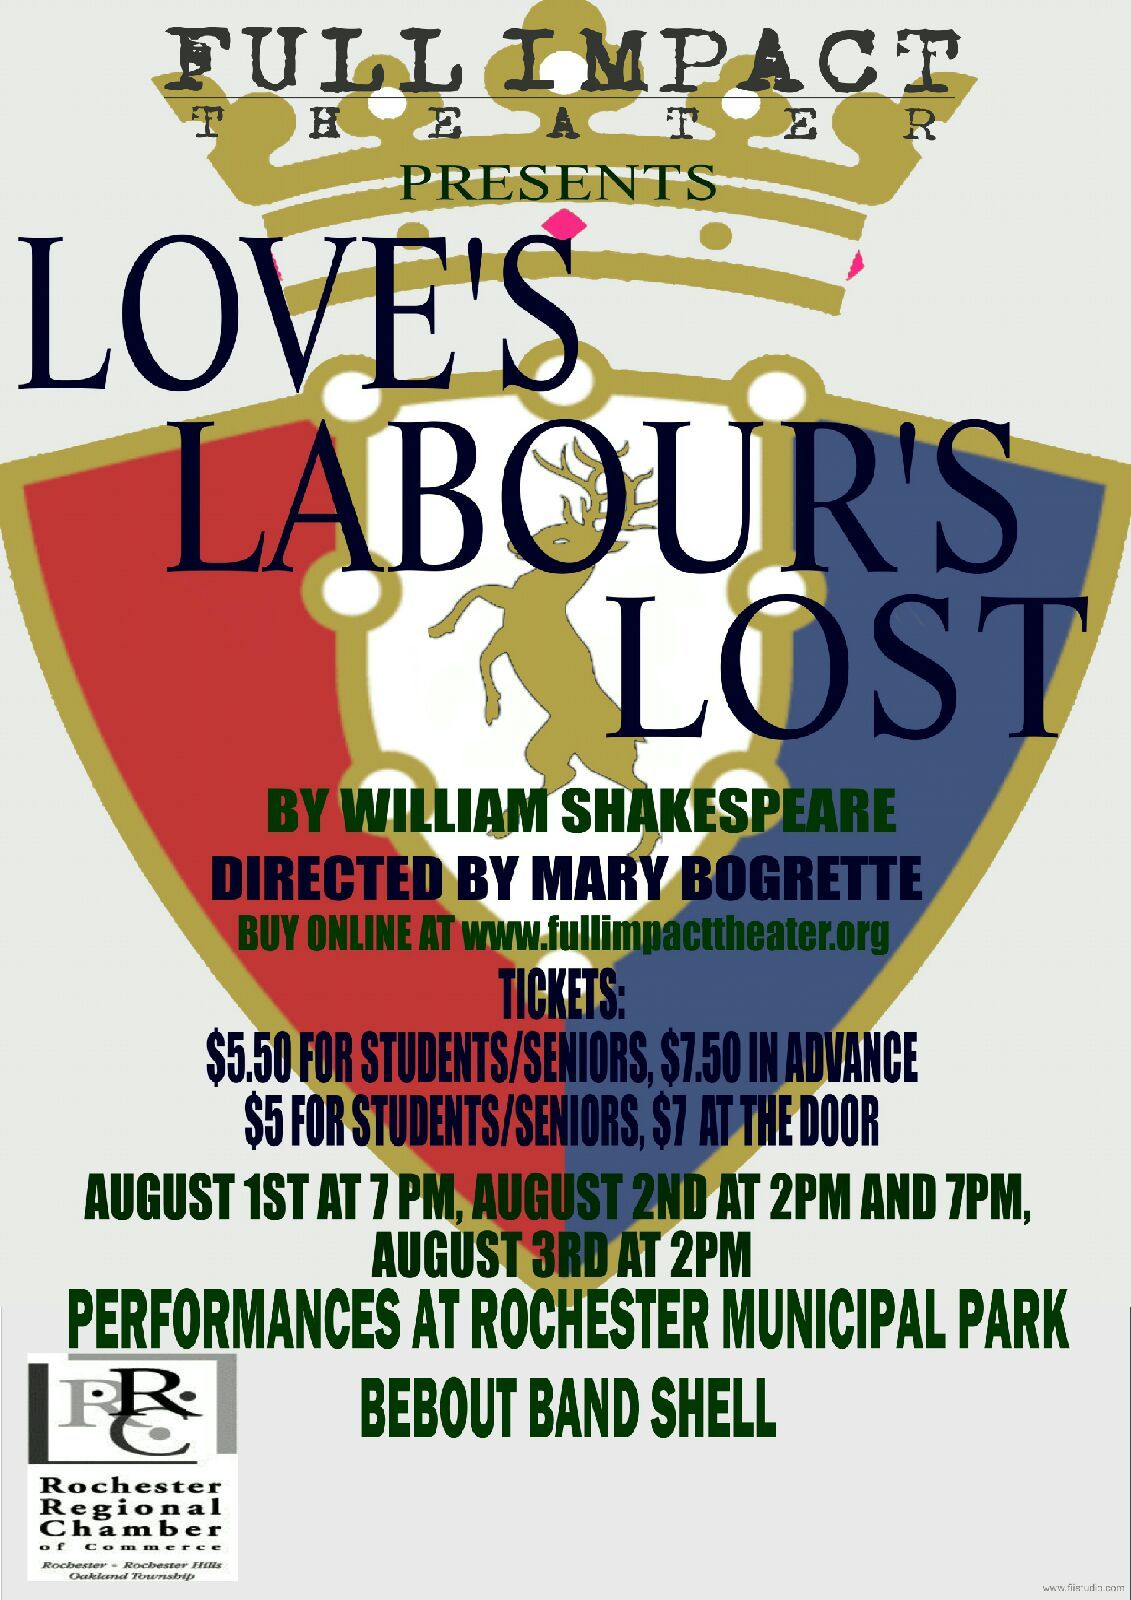 Full impact theater shakespeares loves labours lost